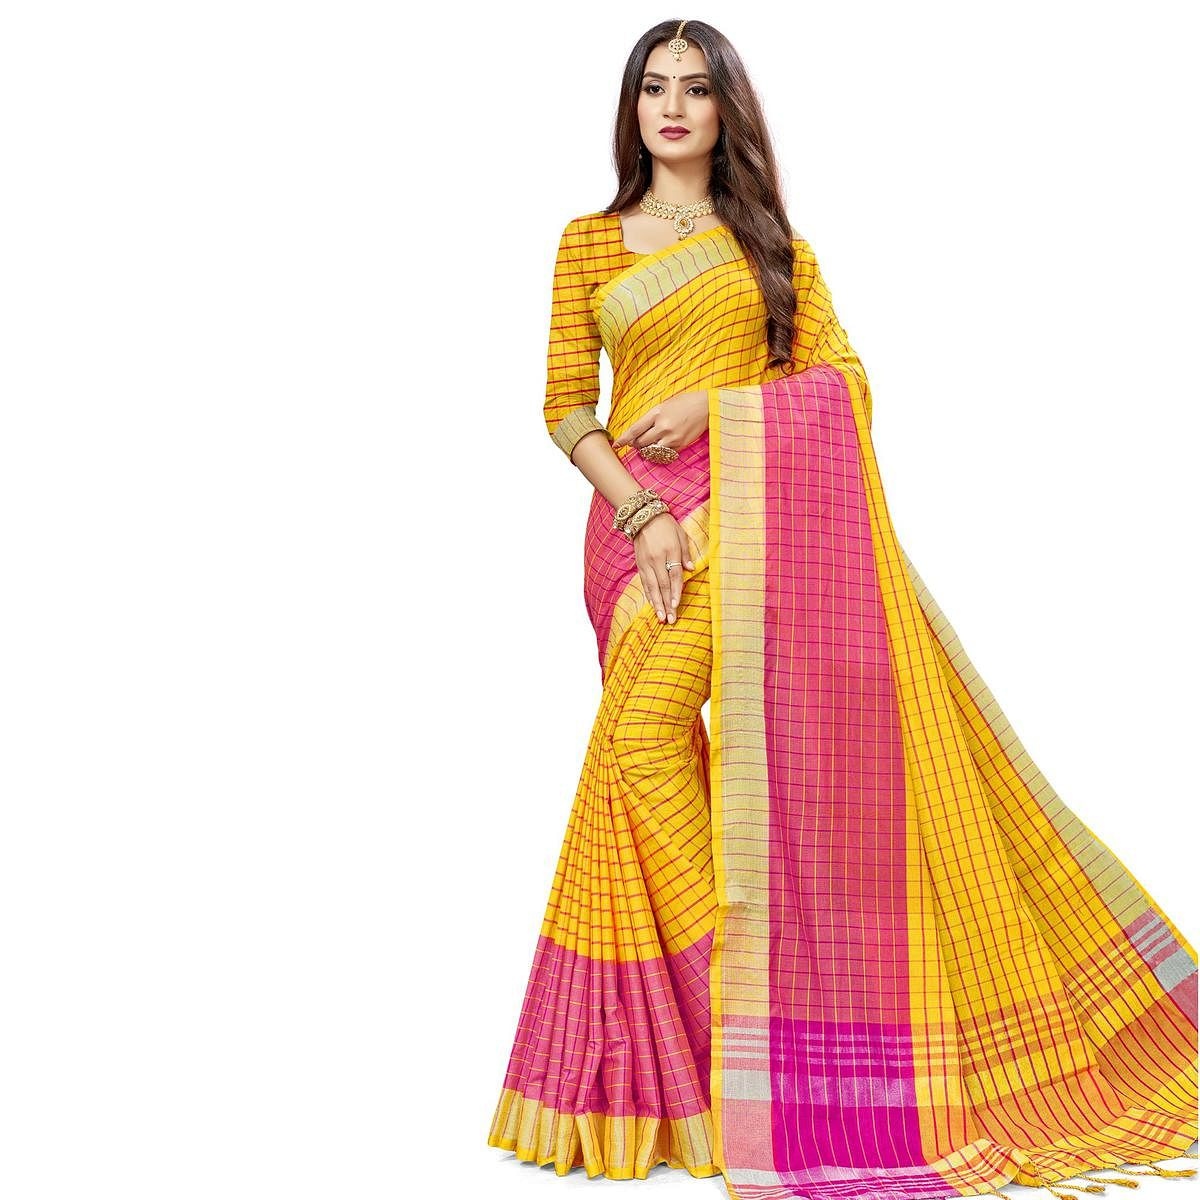 Blooming Yellow Colored Fesive Wear Checks Print Cotton Silk Saree With Tassels